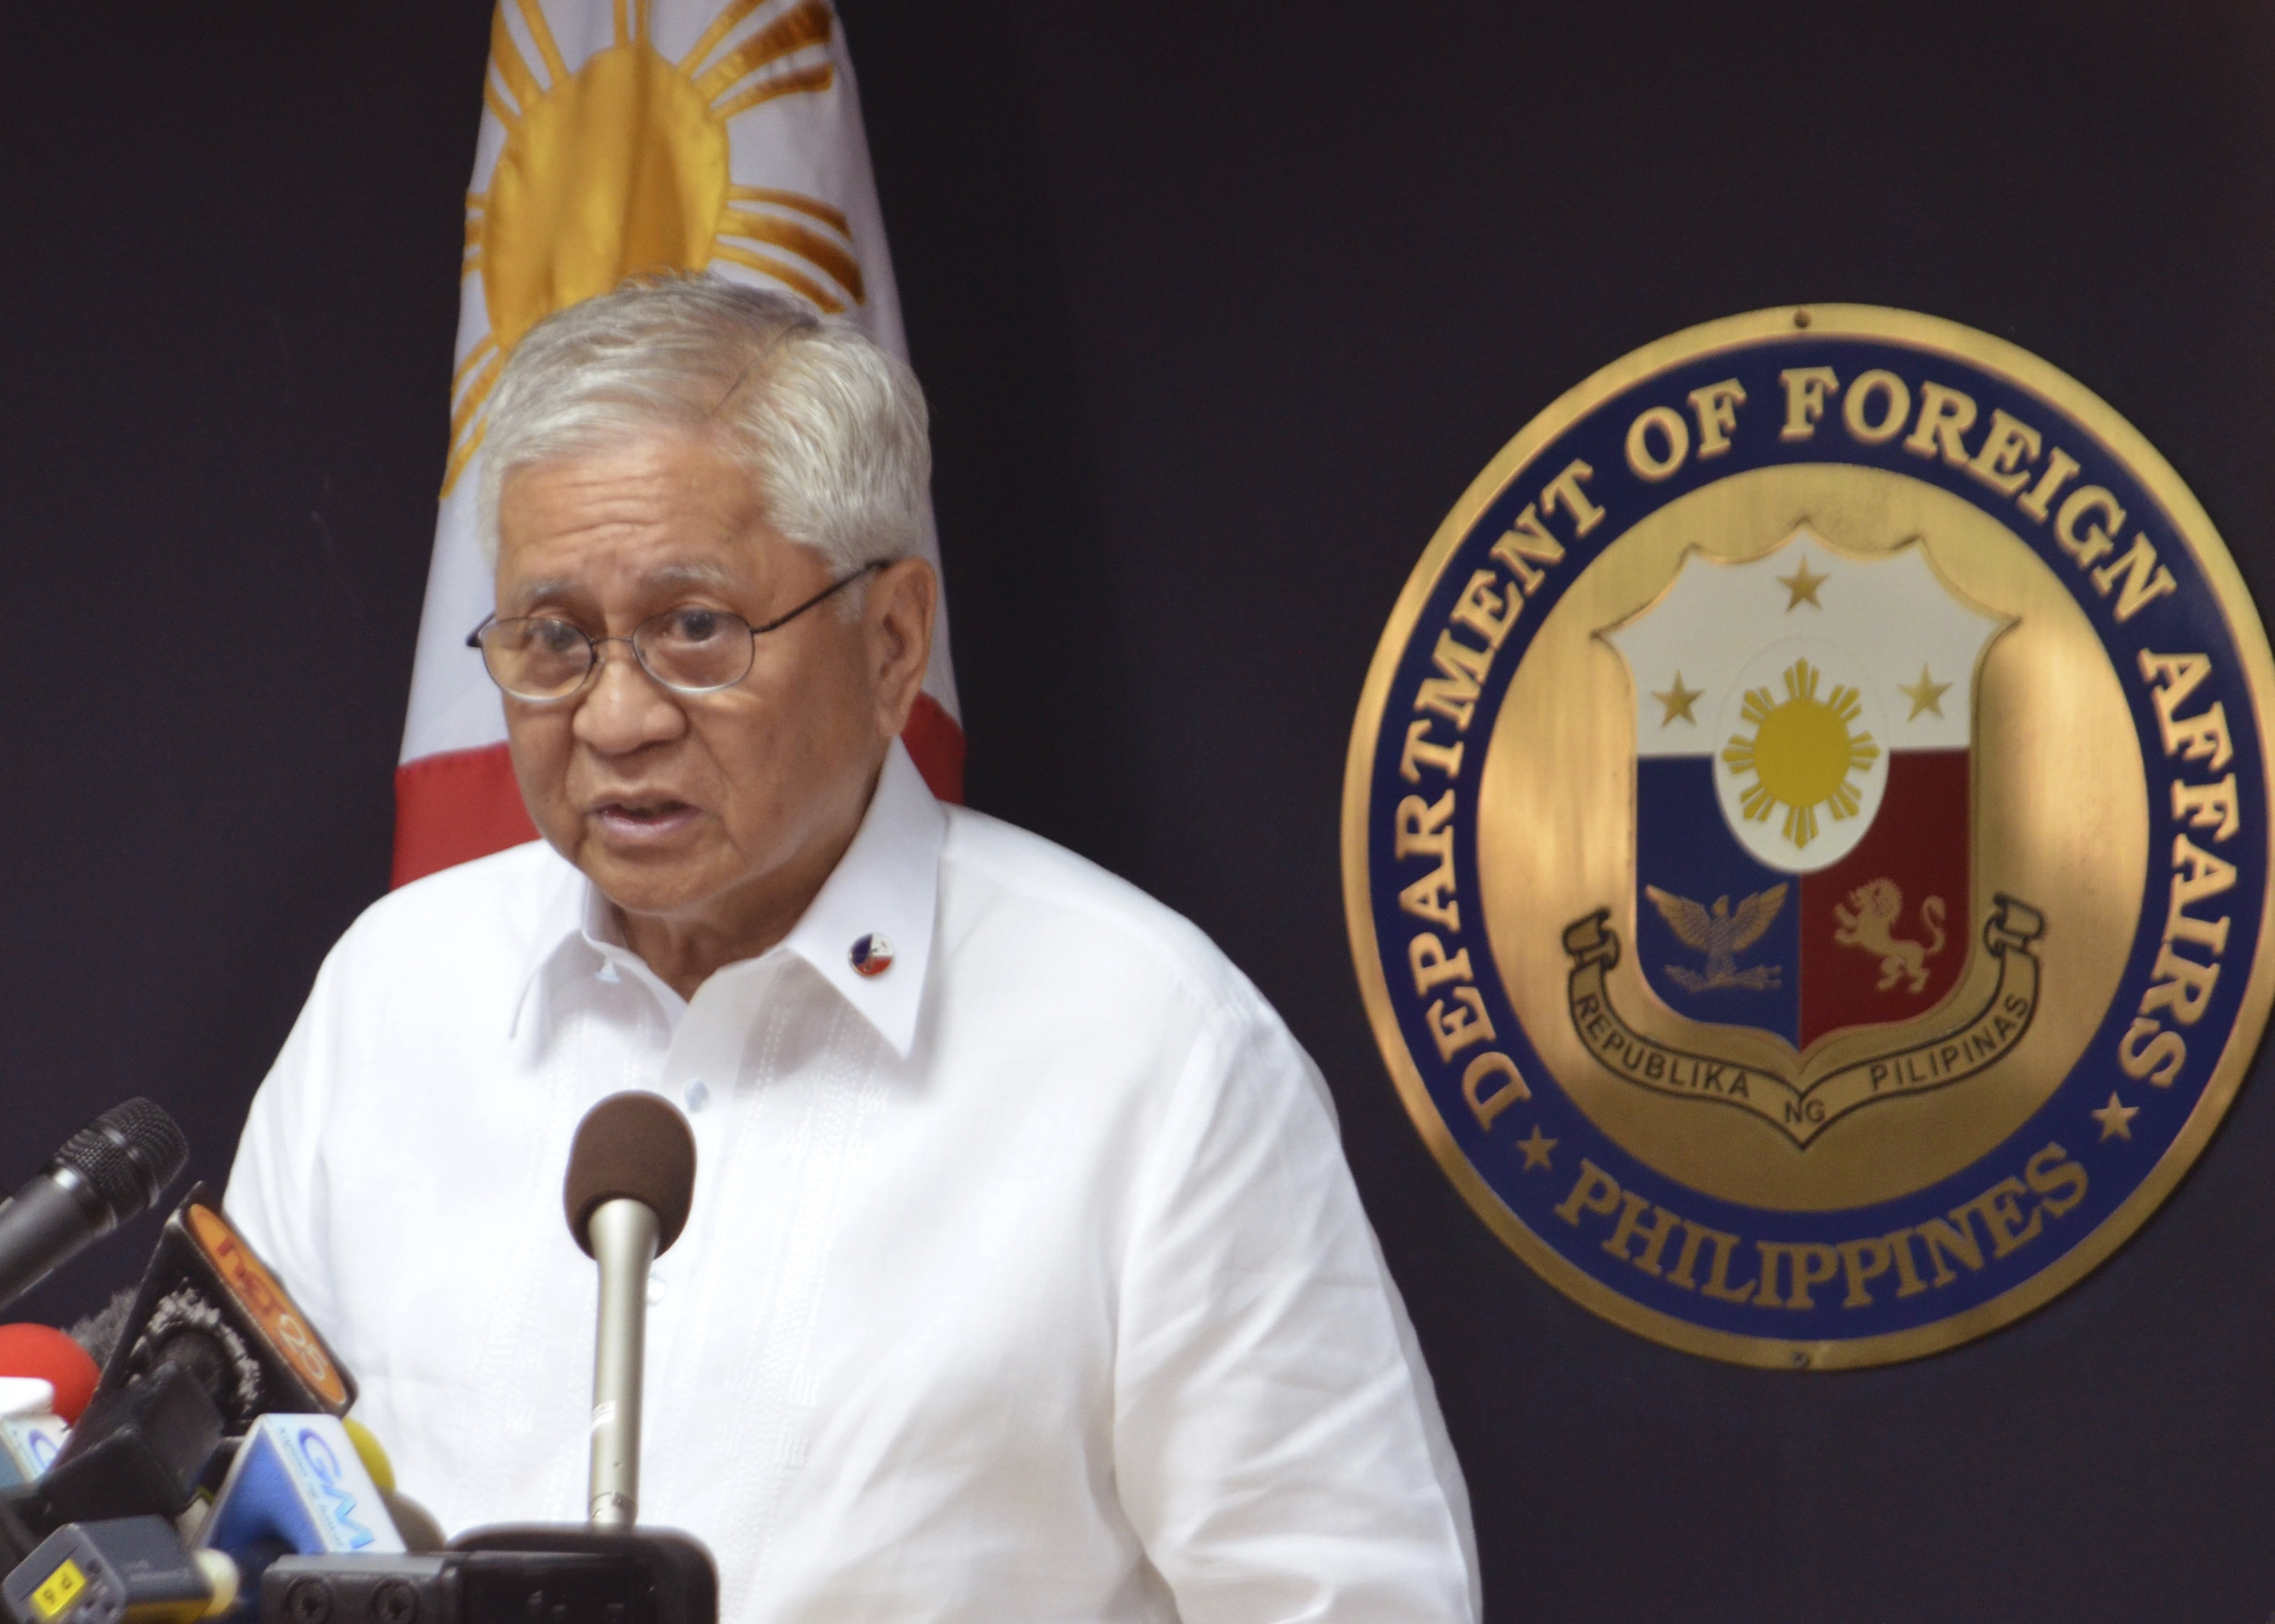 Philippines Aims to Drill in South China Sea